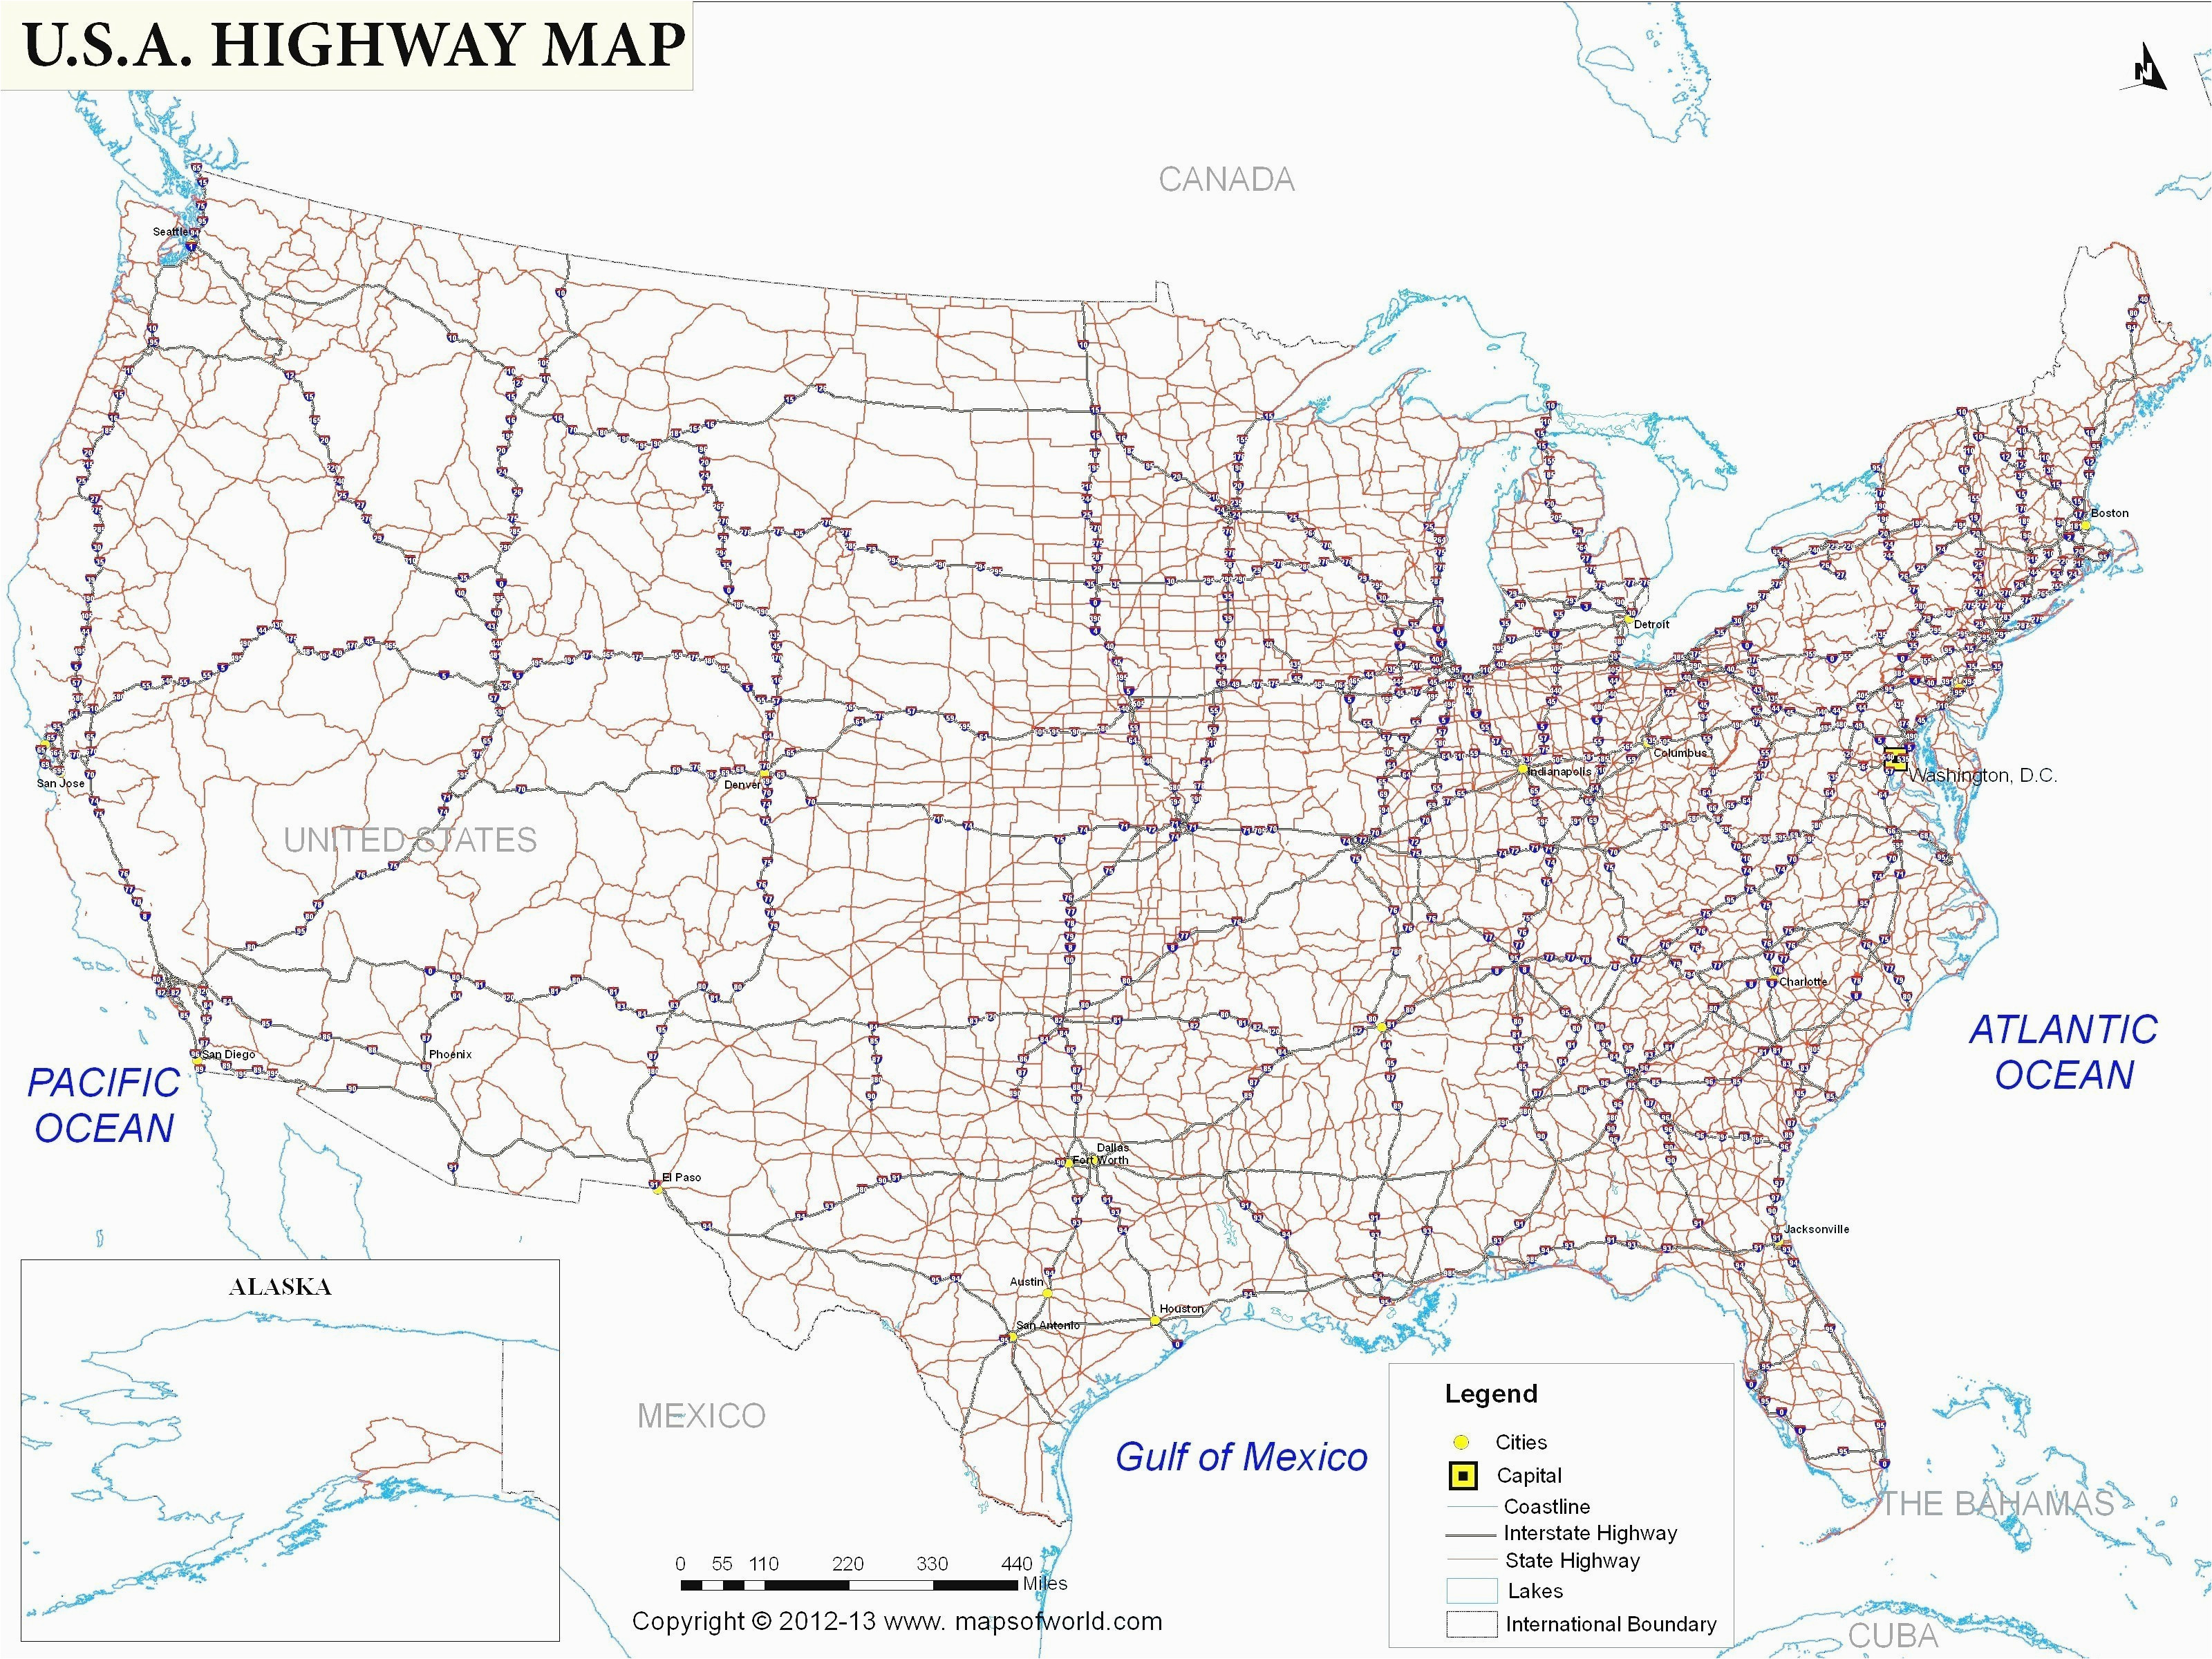 Map to Nashville Tennessee Maps Driving Directions Page 4 Shameonutc  Directions On Map on following directions map, google world map, directions to and from maps, giving directions map, location and direction map, directions on paper,